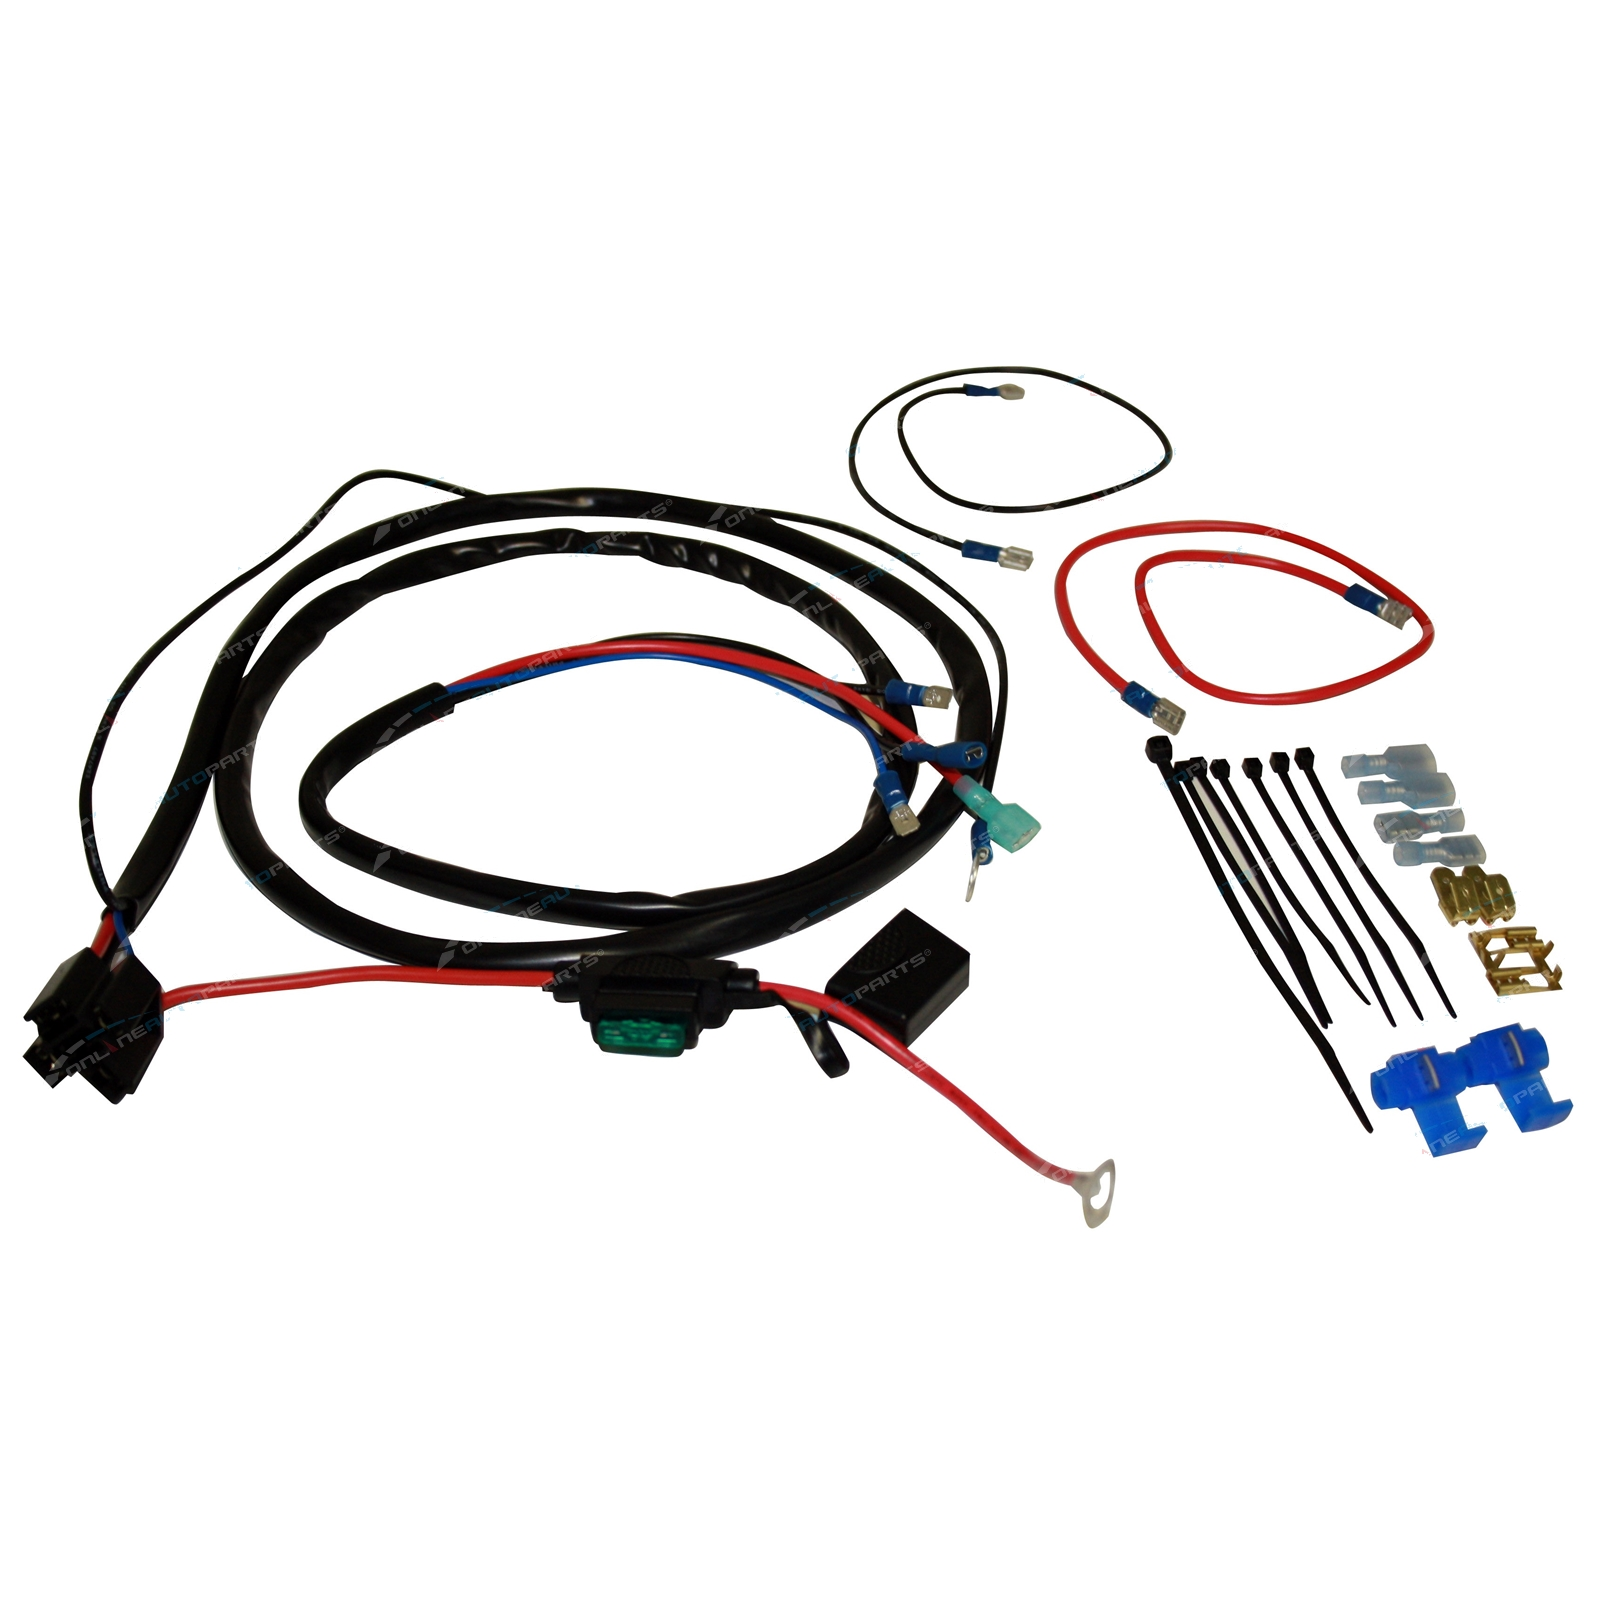 136db high power stebel magnum twin electric horn wiring harness car bike loud